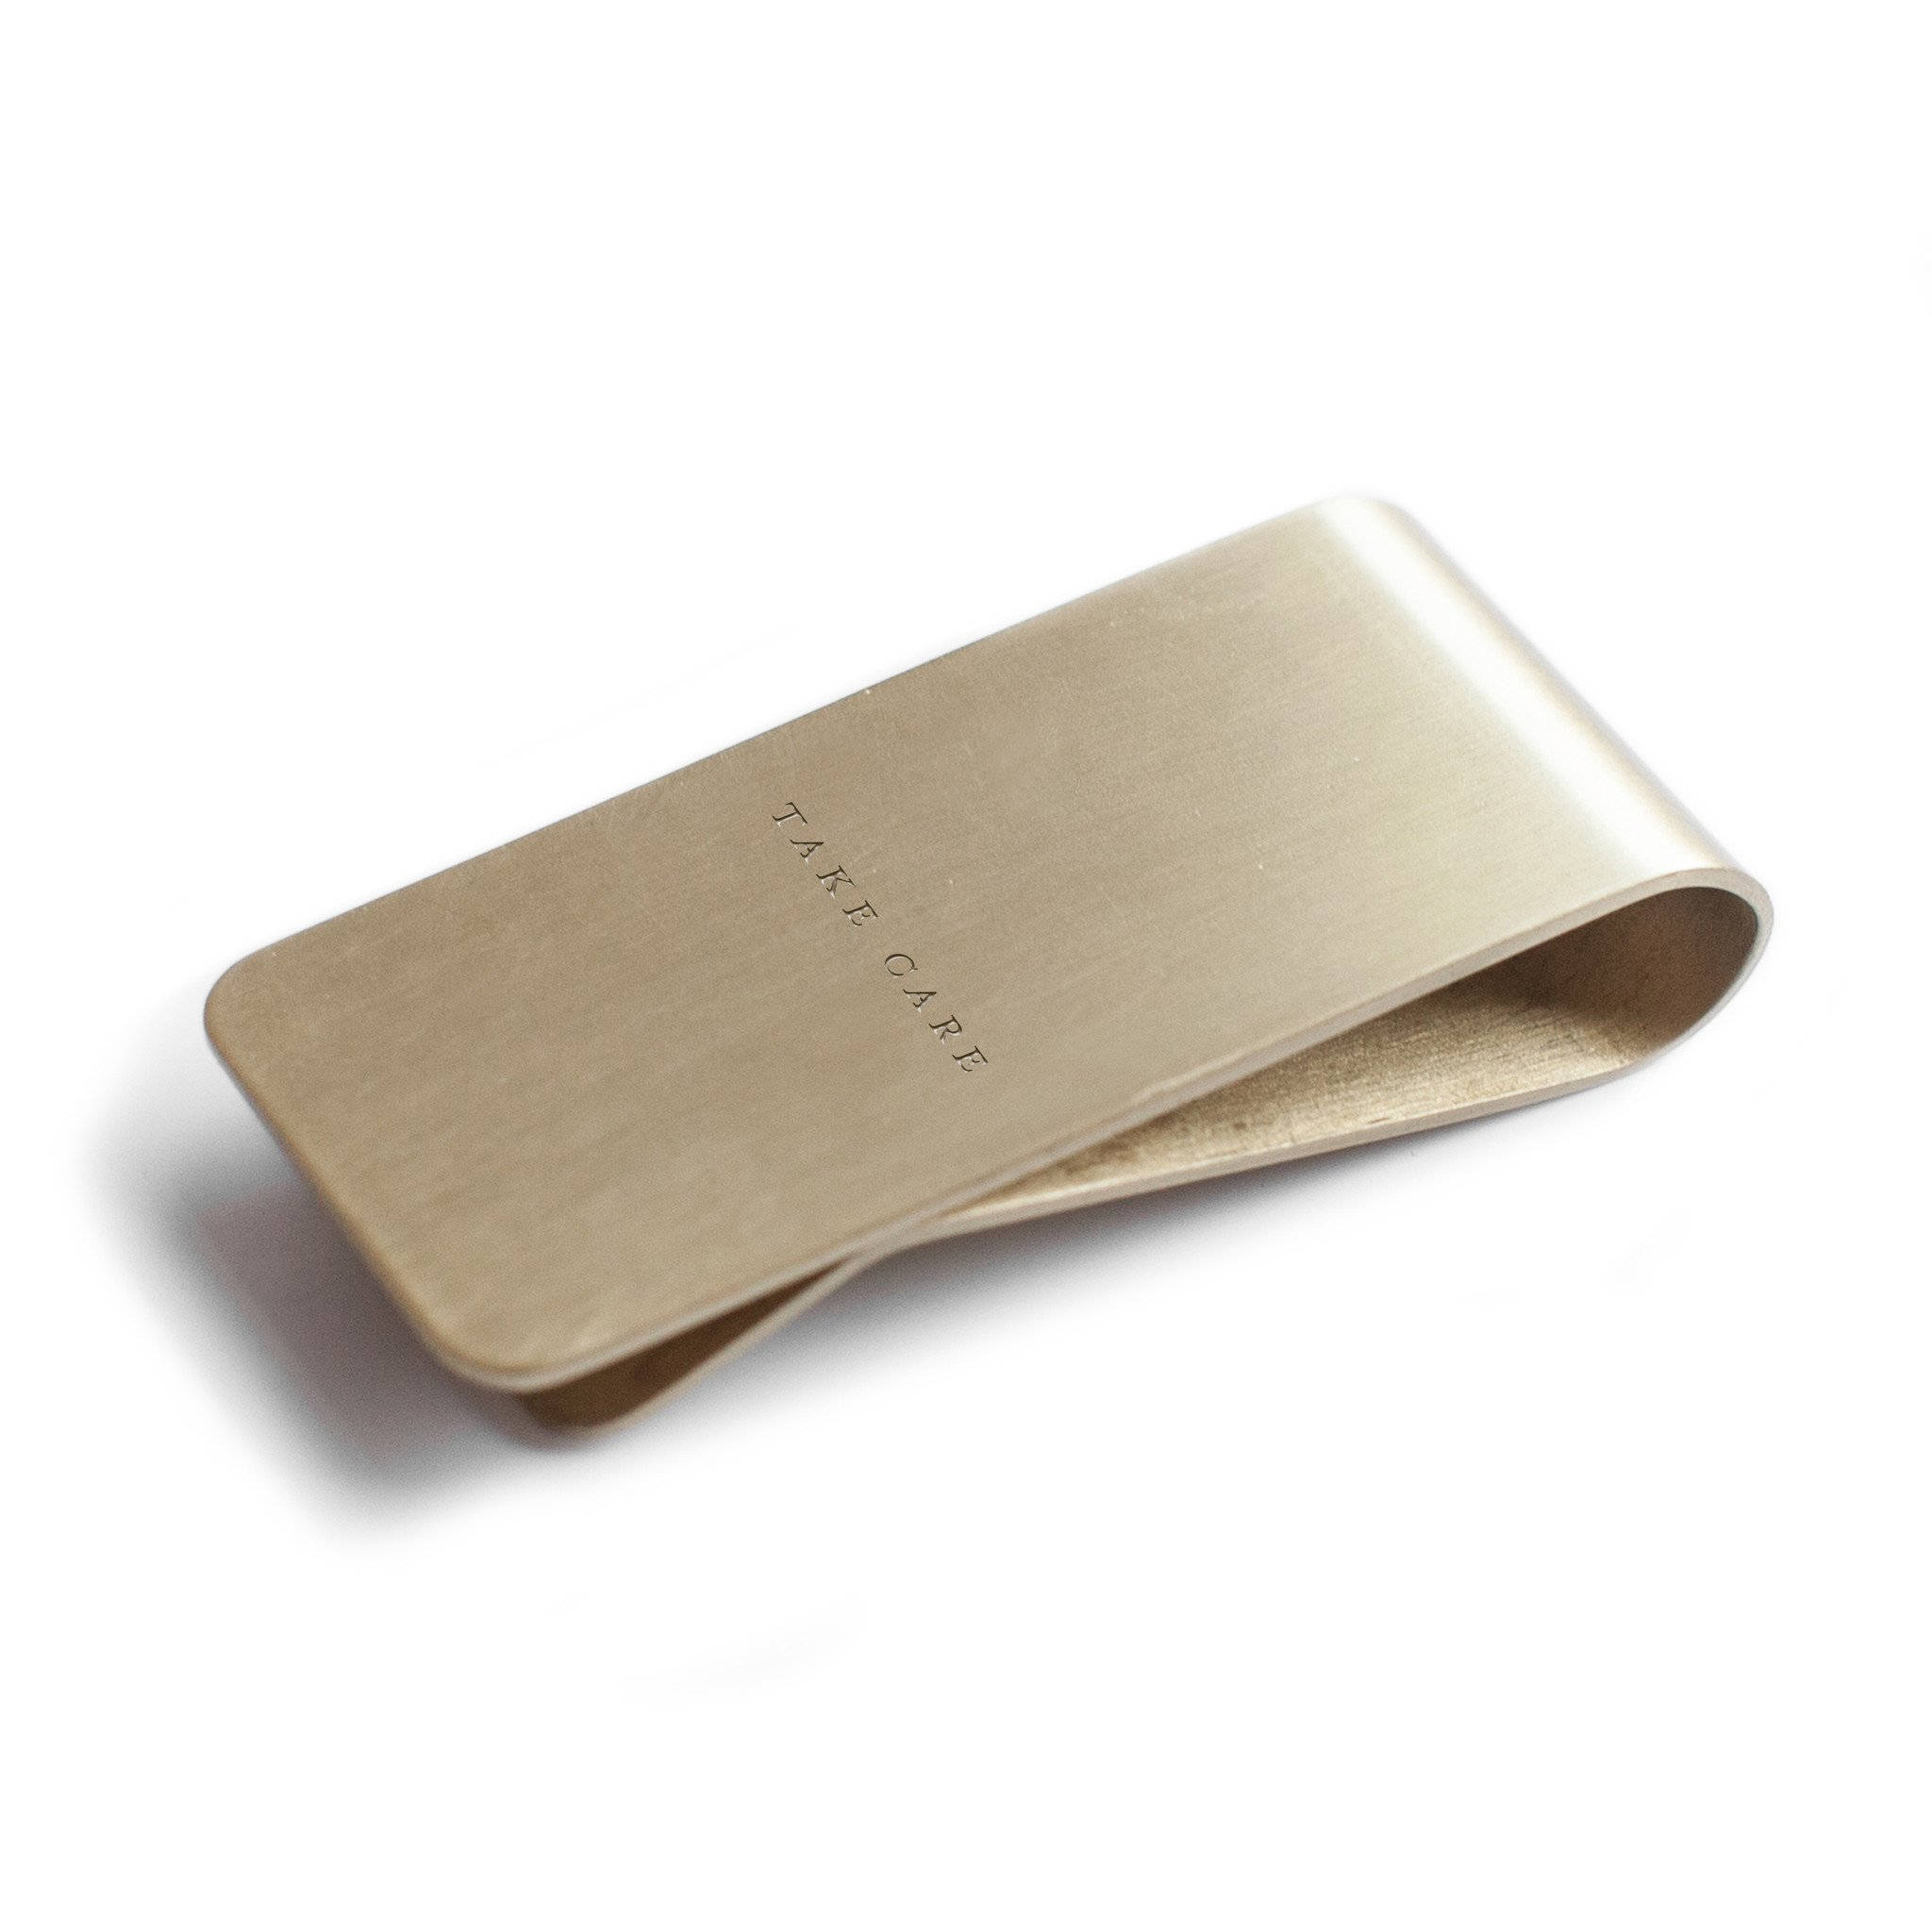 Izola Brass Money Clip Wallet Credit Card Cash ID Holder Travel Tool - Take Care